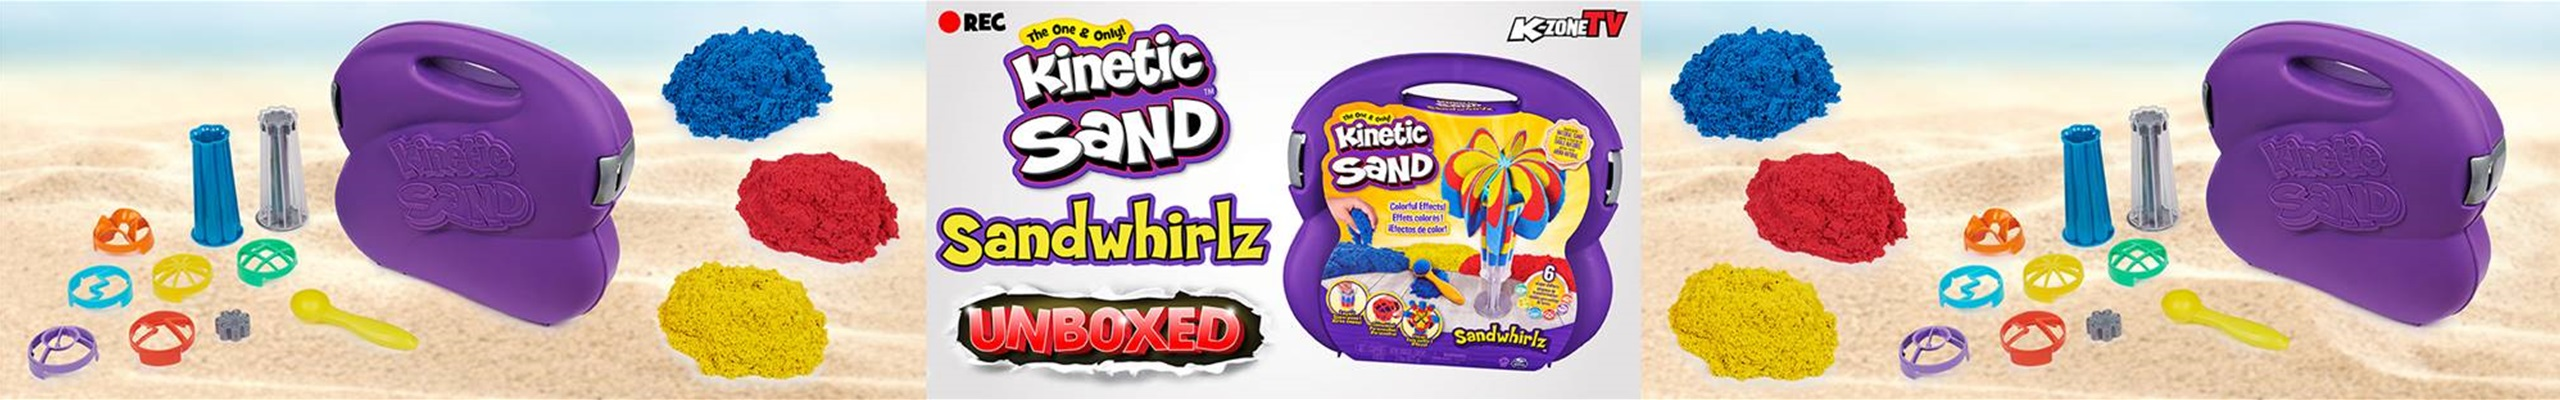 Kinetic Sand Sandwhirlz Unboxing